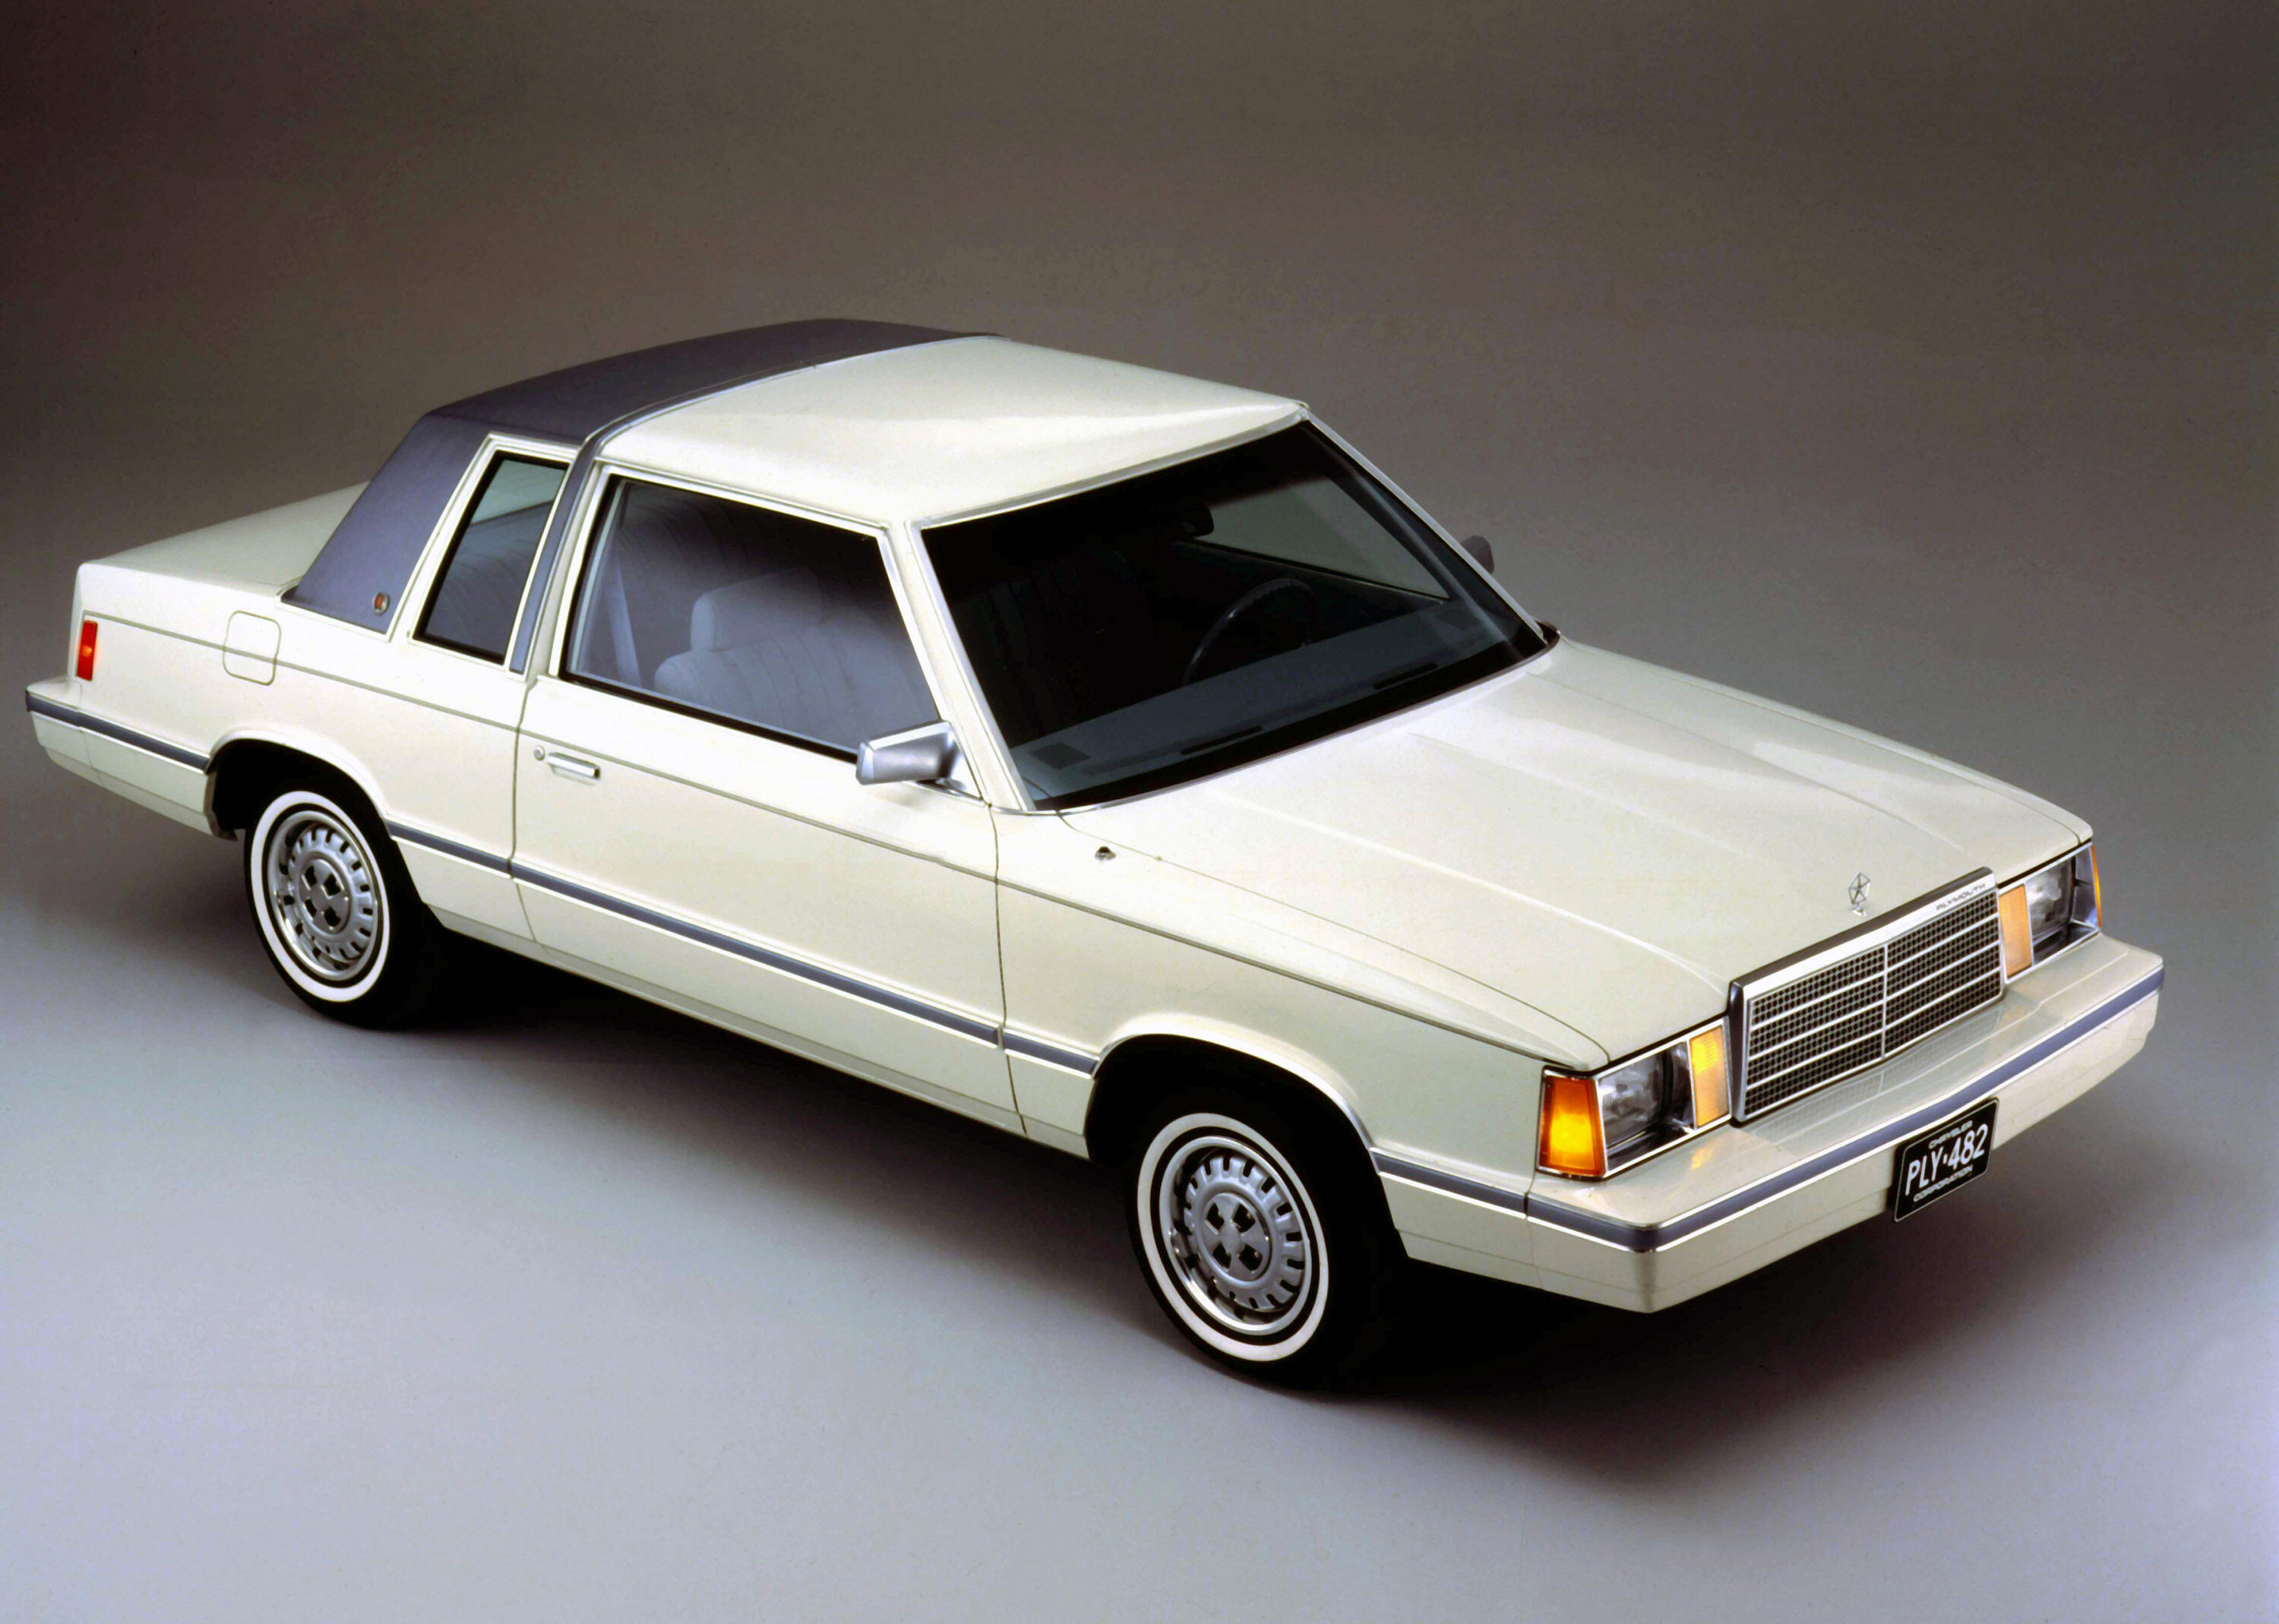 1981 Plymouth Reliant